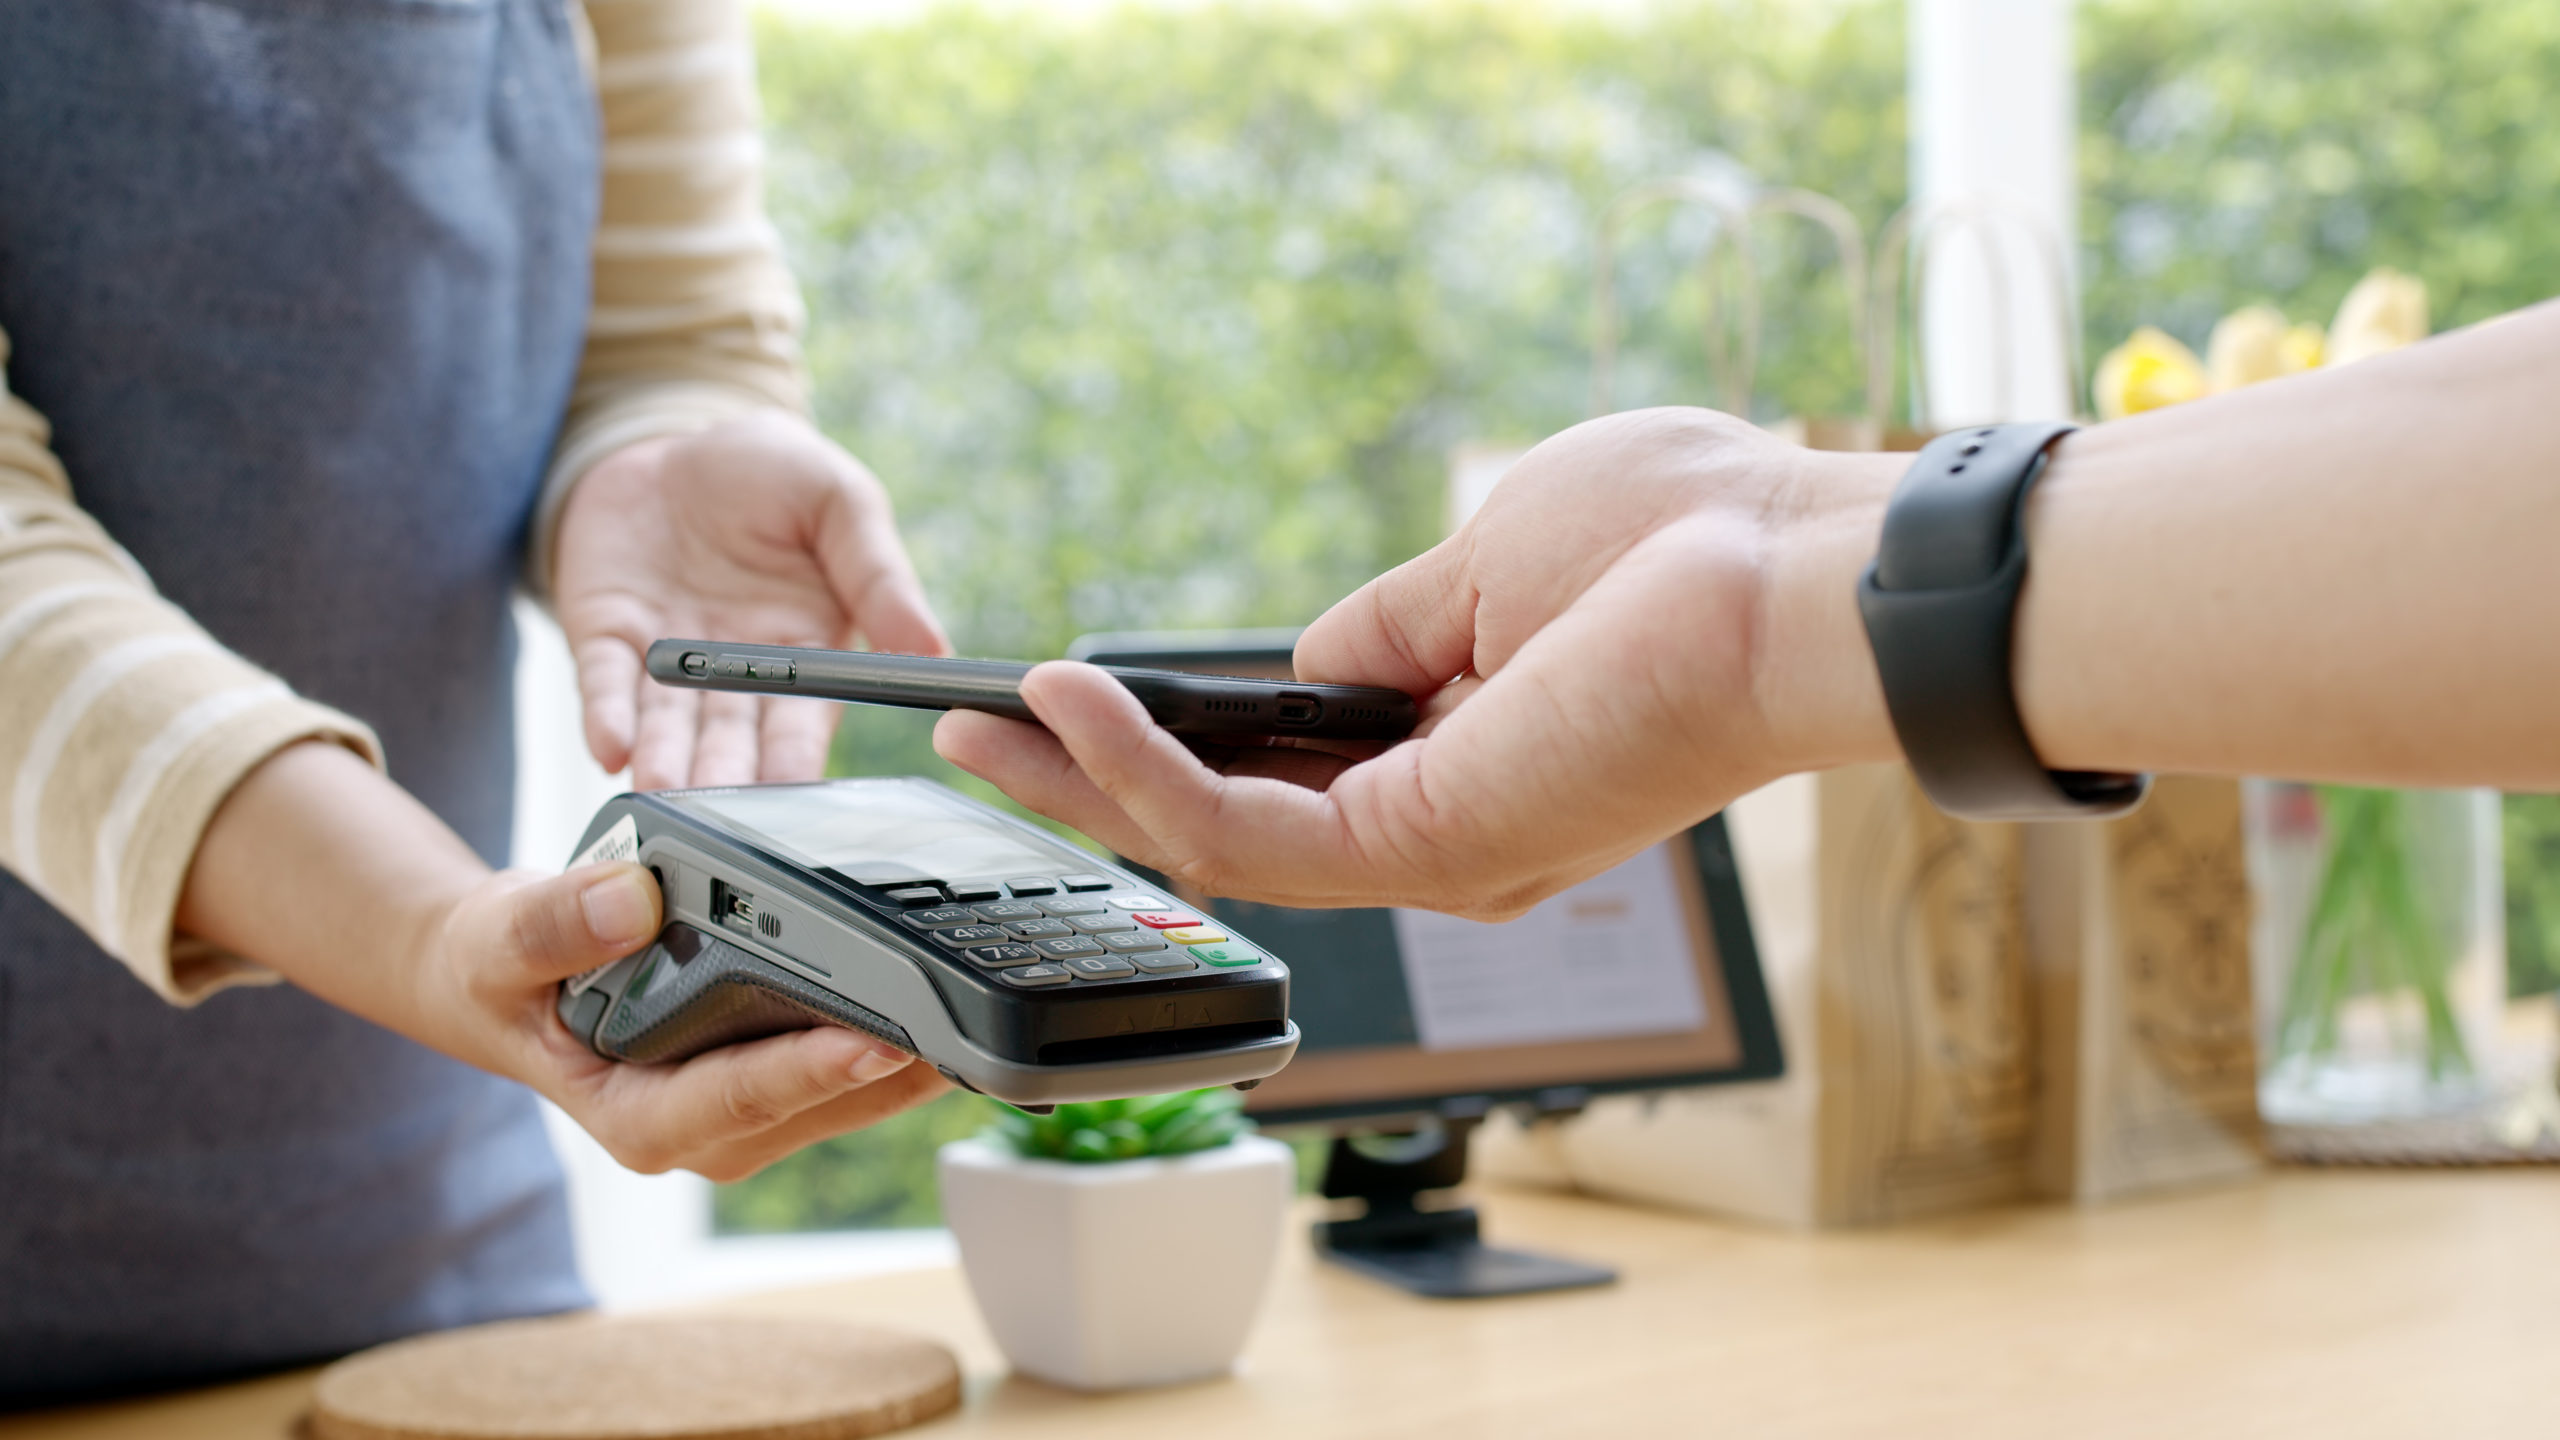 Point of sale transaction